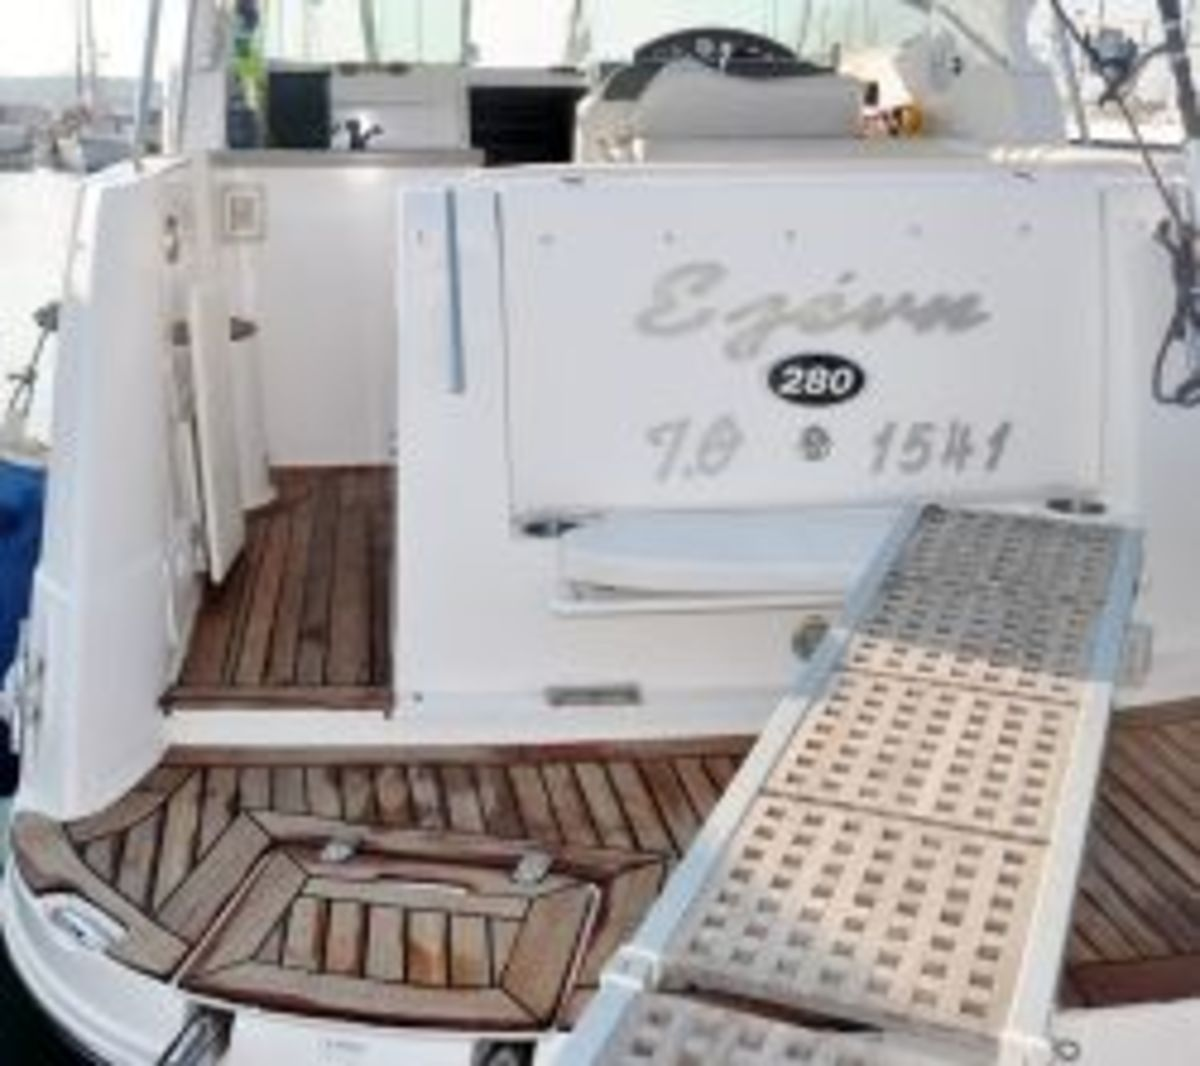 DIY Teak Boat Decking-How to install a teak deck on your boat